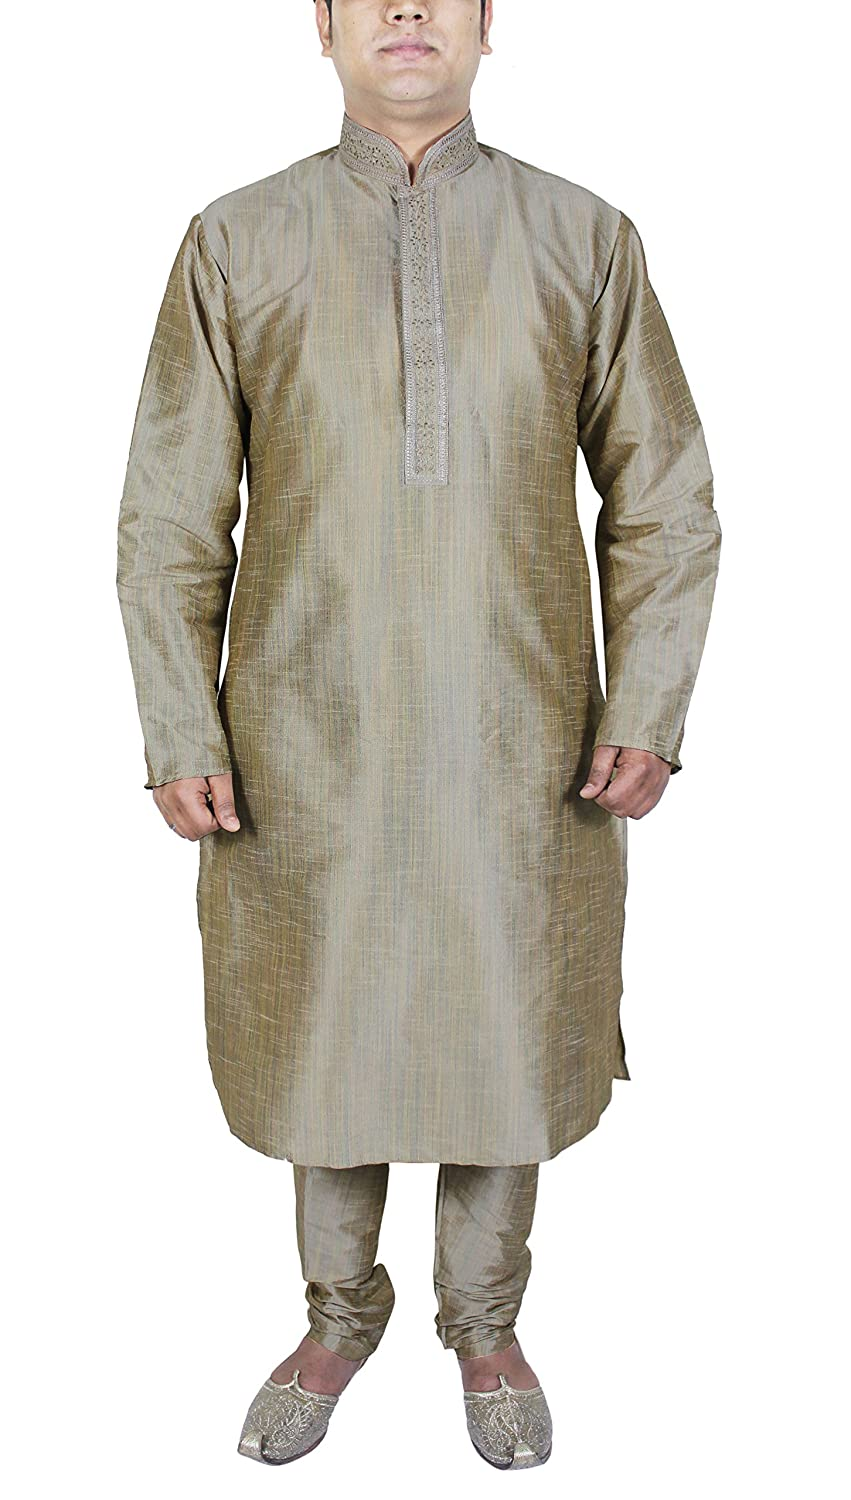 Yoga Kurta Pajama Silk Party Wear Casual Indian Wedding Fashion Dress -M